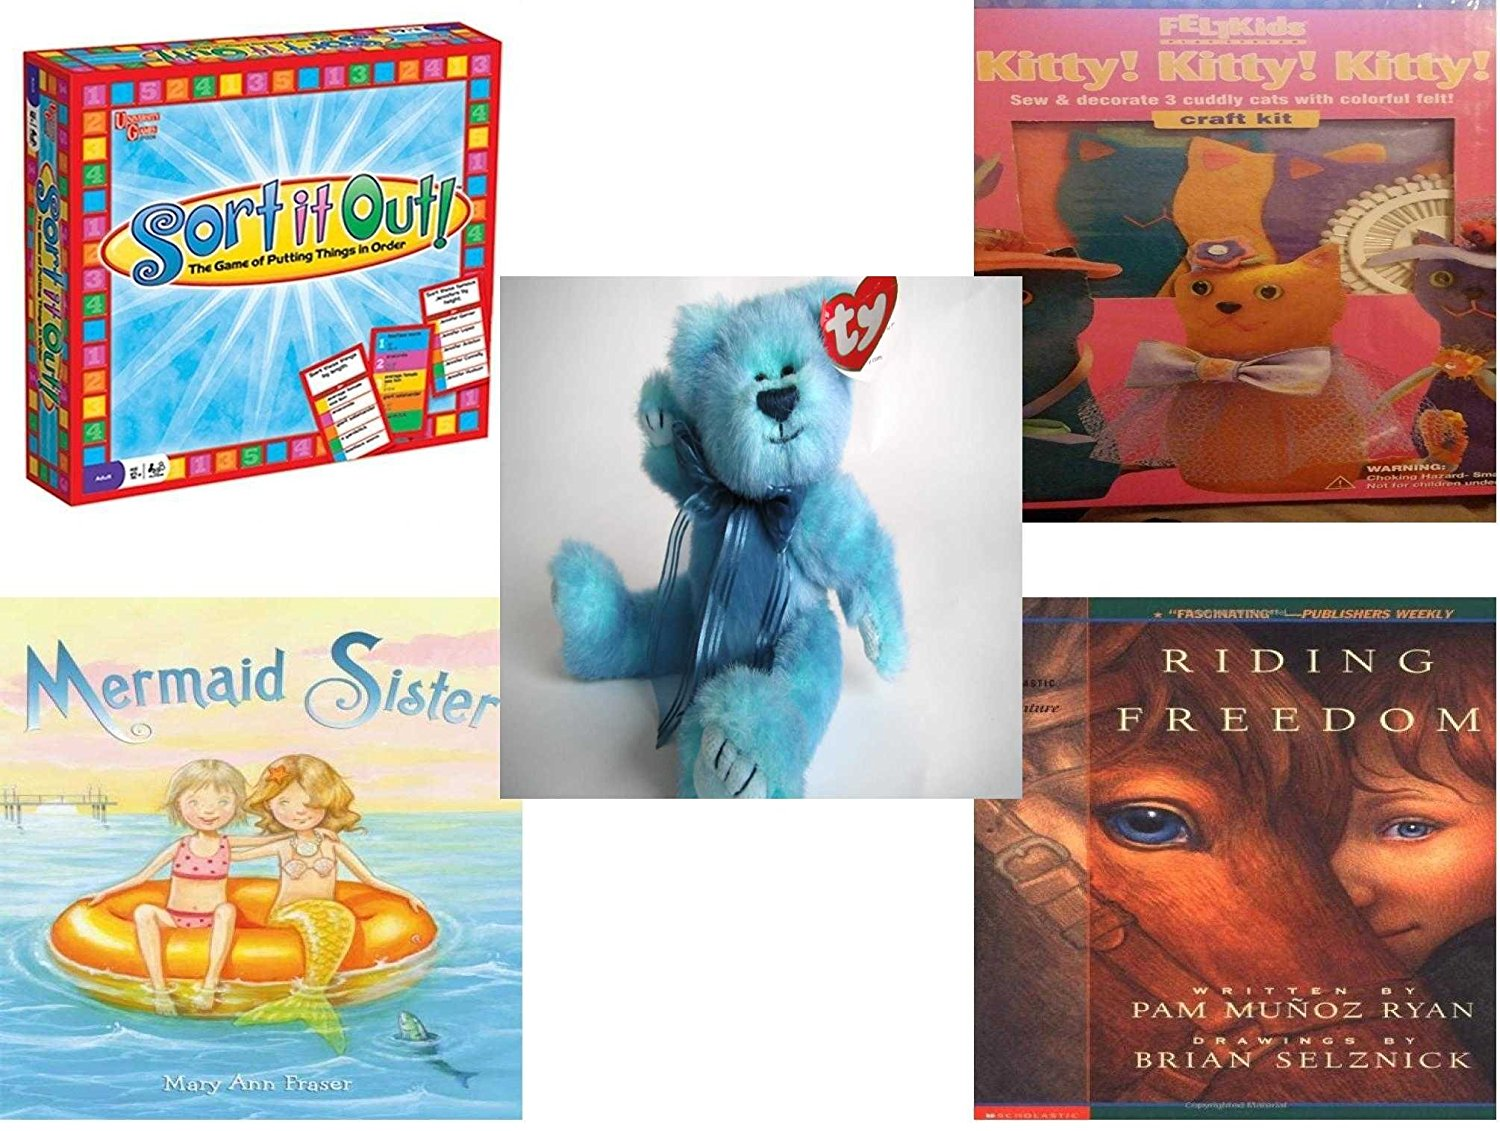 Girl's Gift Bundle - Ages 6-12 [5 Piece] - Sort It Out. Game - Felt Kids Kitty Craft Kit Toy - Ty Attic Treasures Azure The Bear - Mermaid Sister Hardcover Book - Riding Freedom Paperback Book